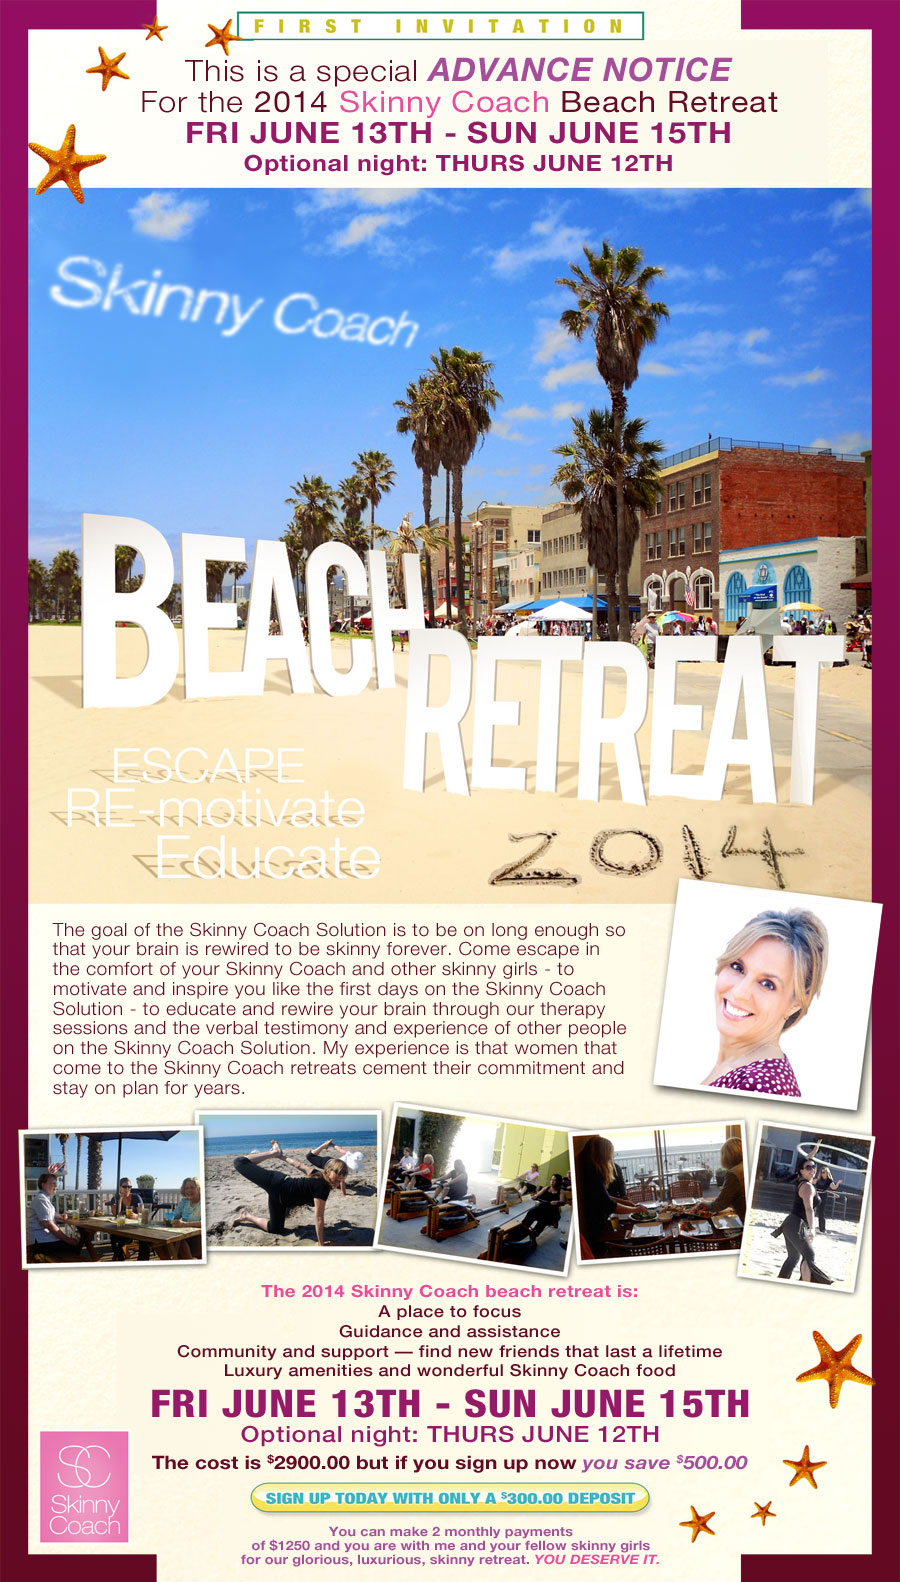 Skinny Coach Beach Retreat 2014